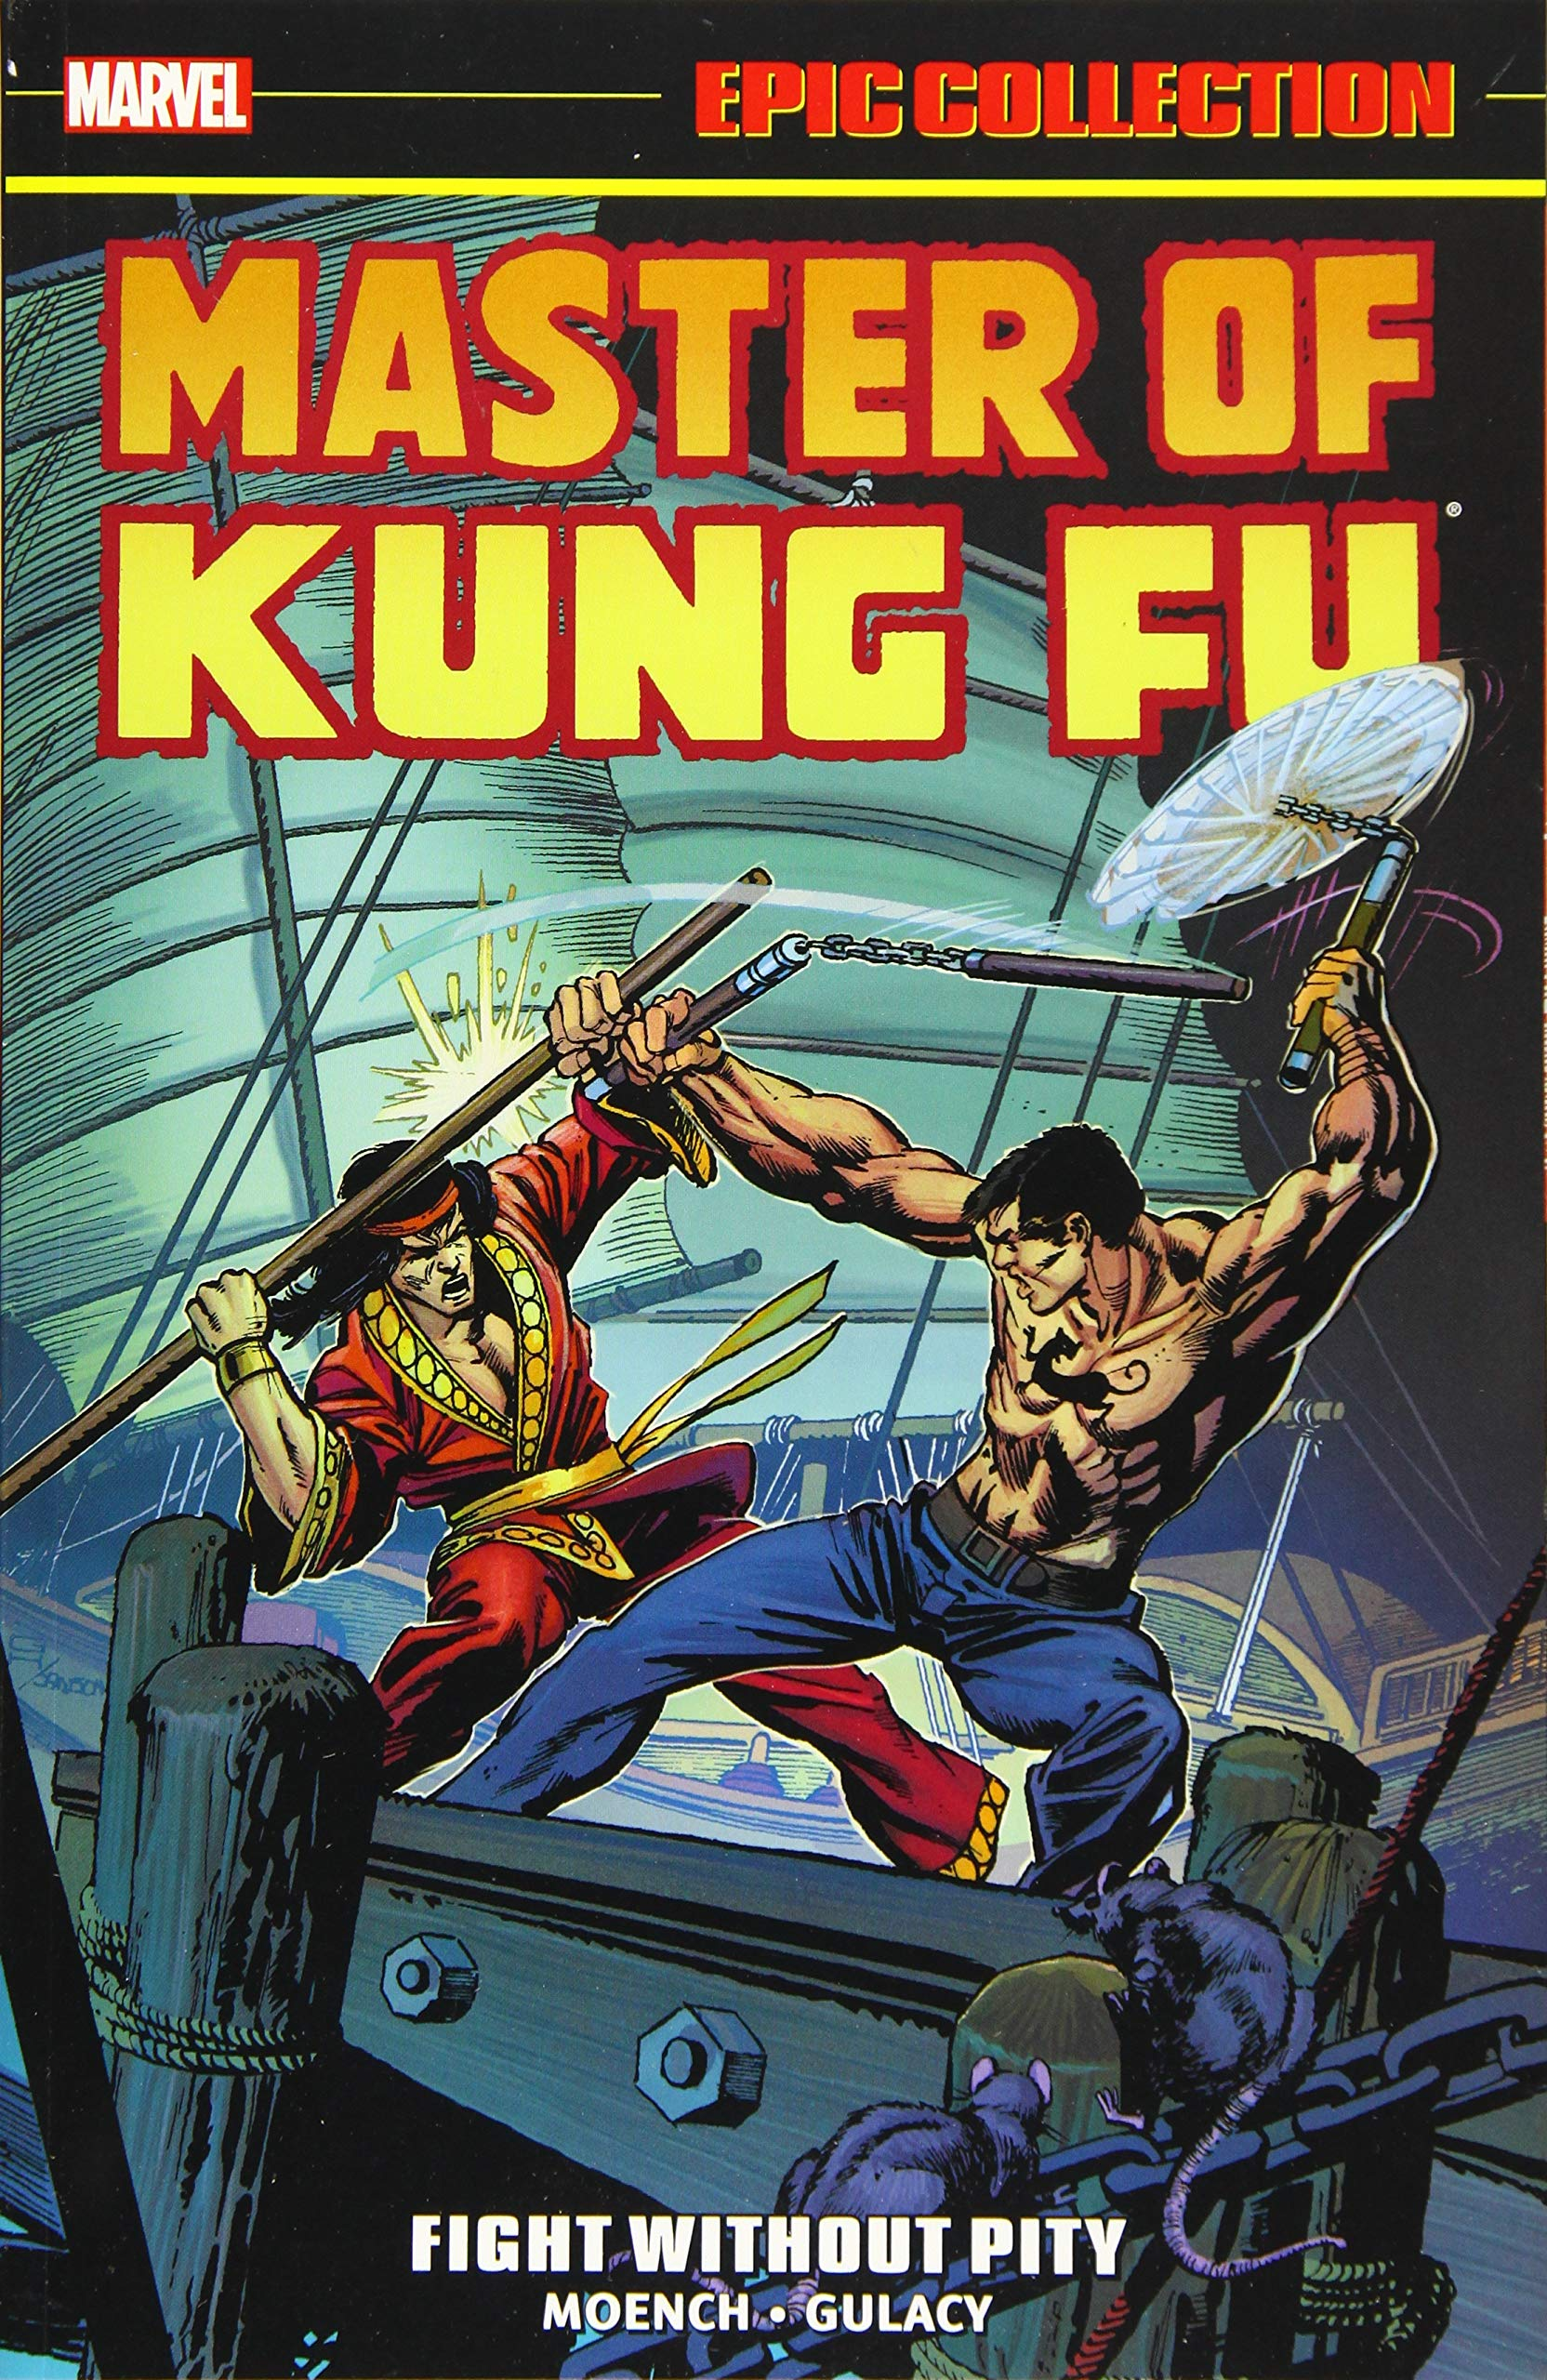 MASTER OF KUNG FU EPIC COLLECTION FIGHT WITHOUT PITY: Amazon ...